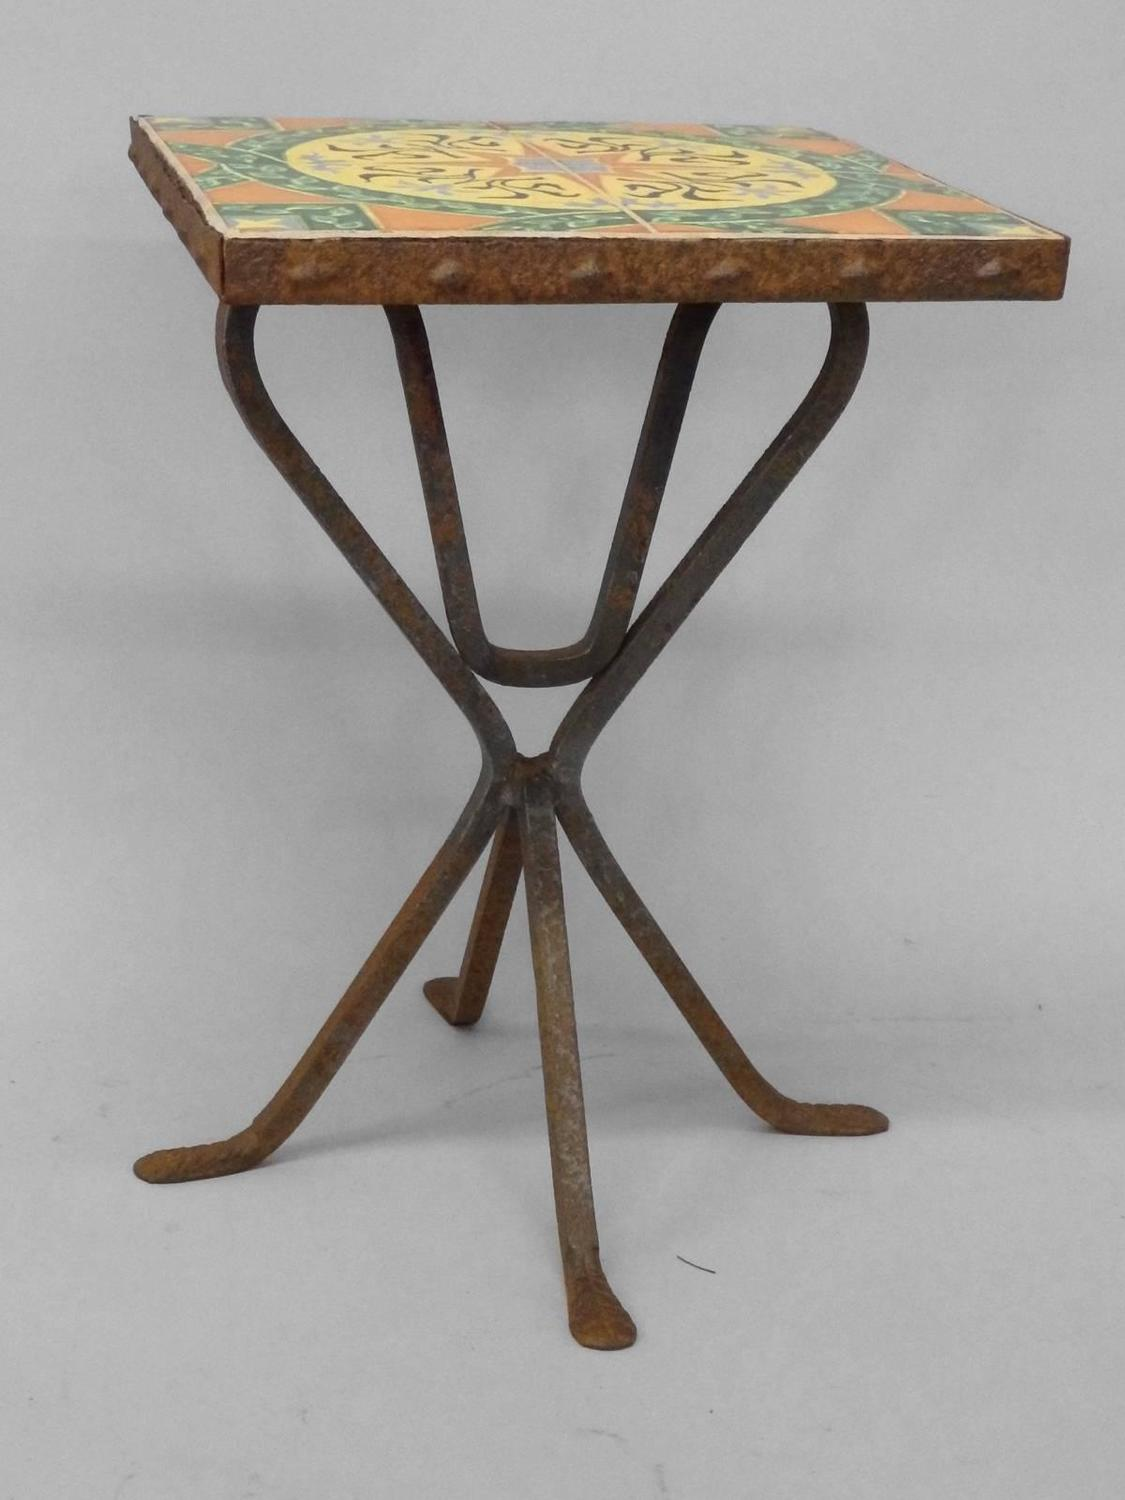 Wrought iron base catalina tile top occasional table for for Wrought iron side table base